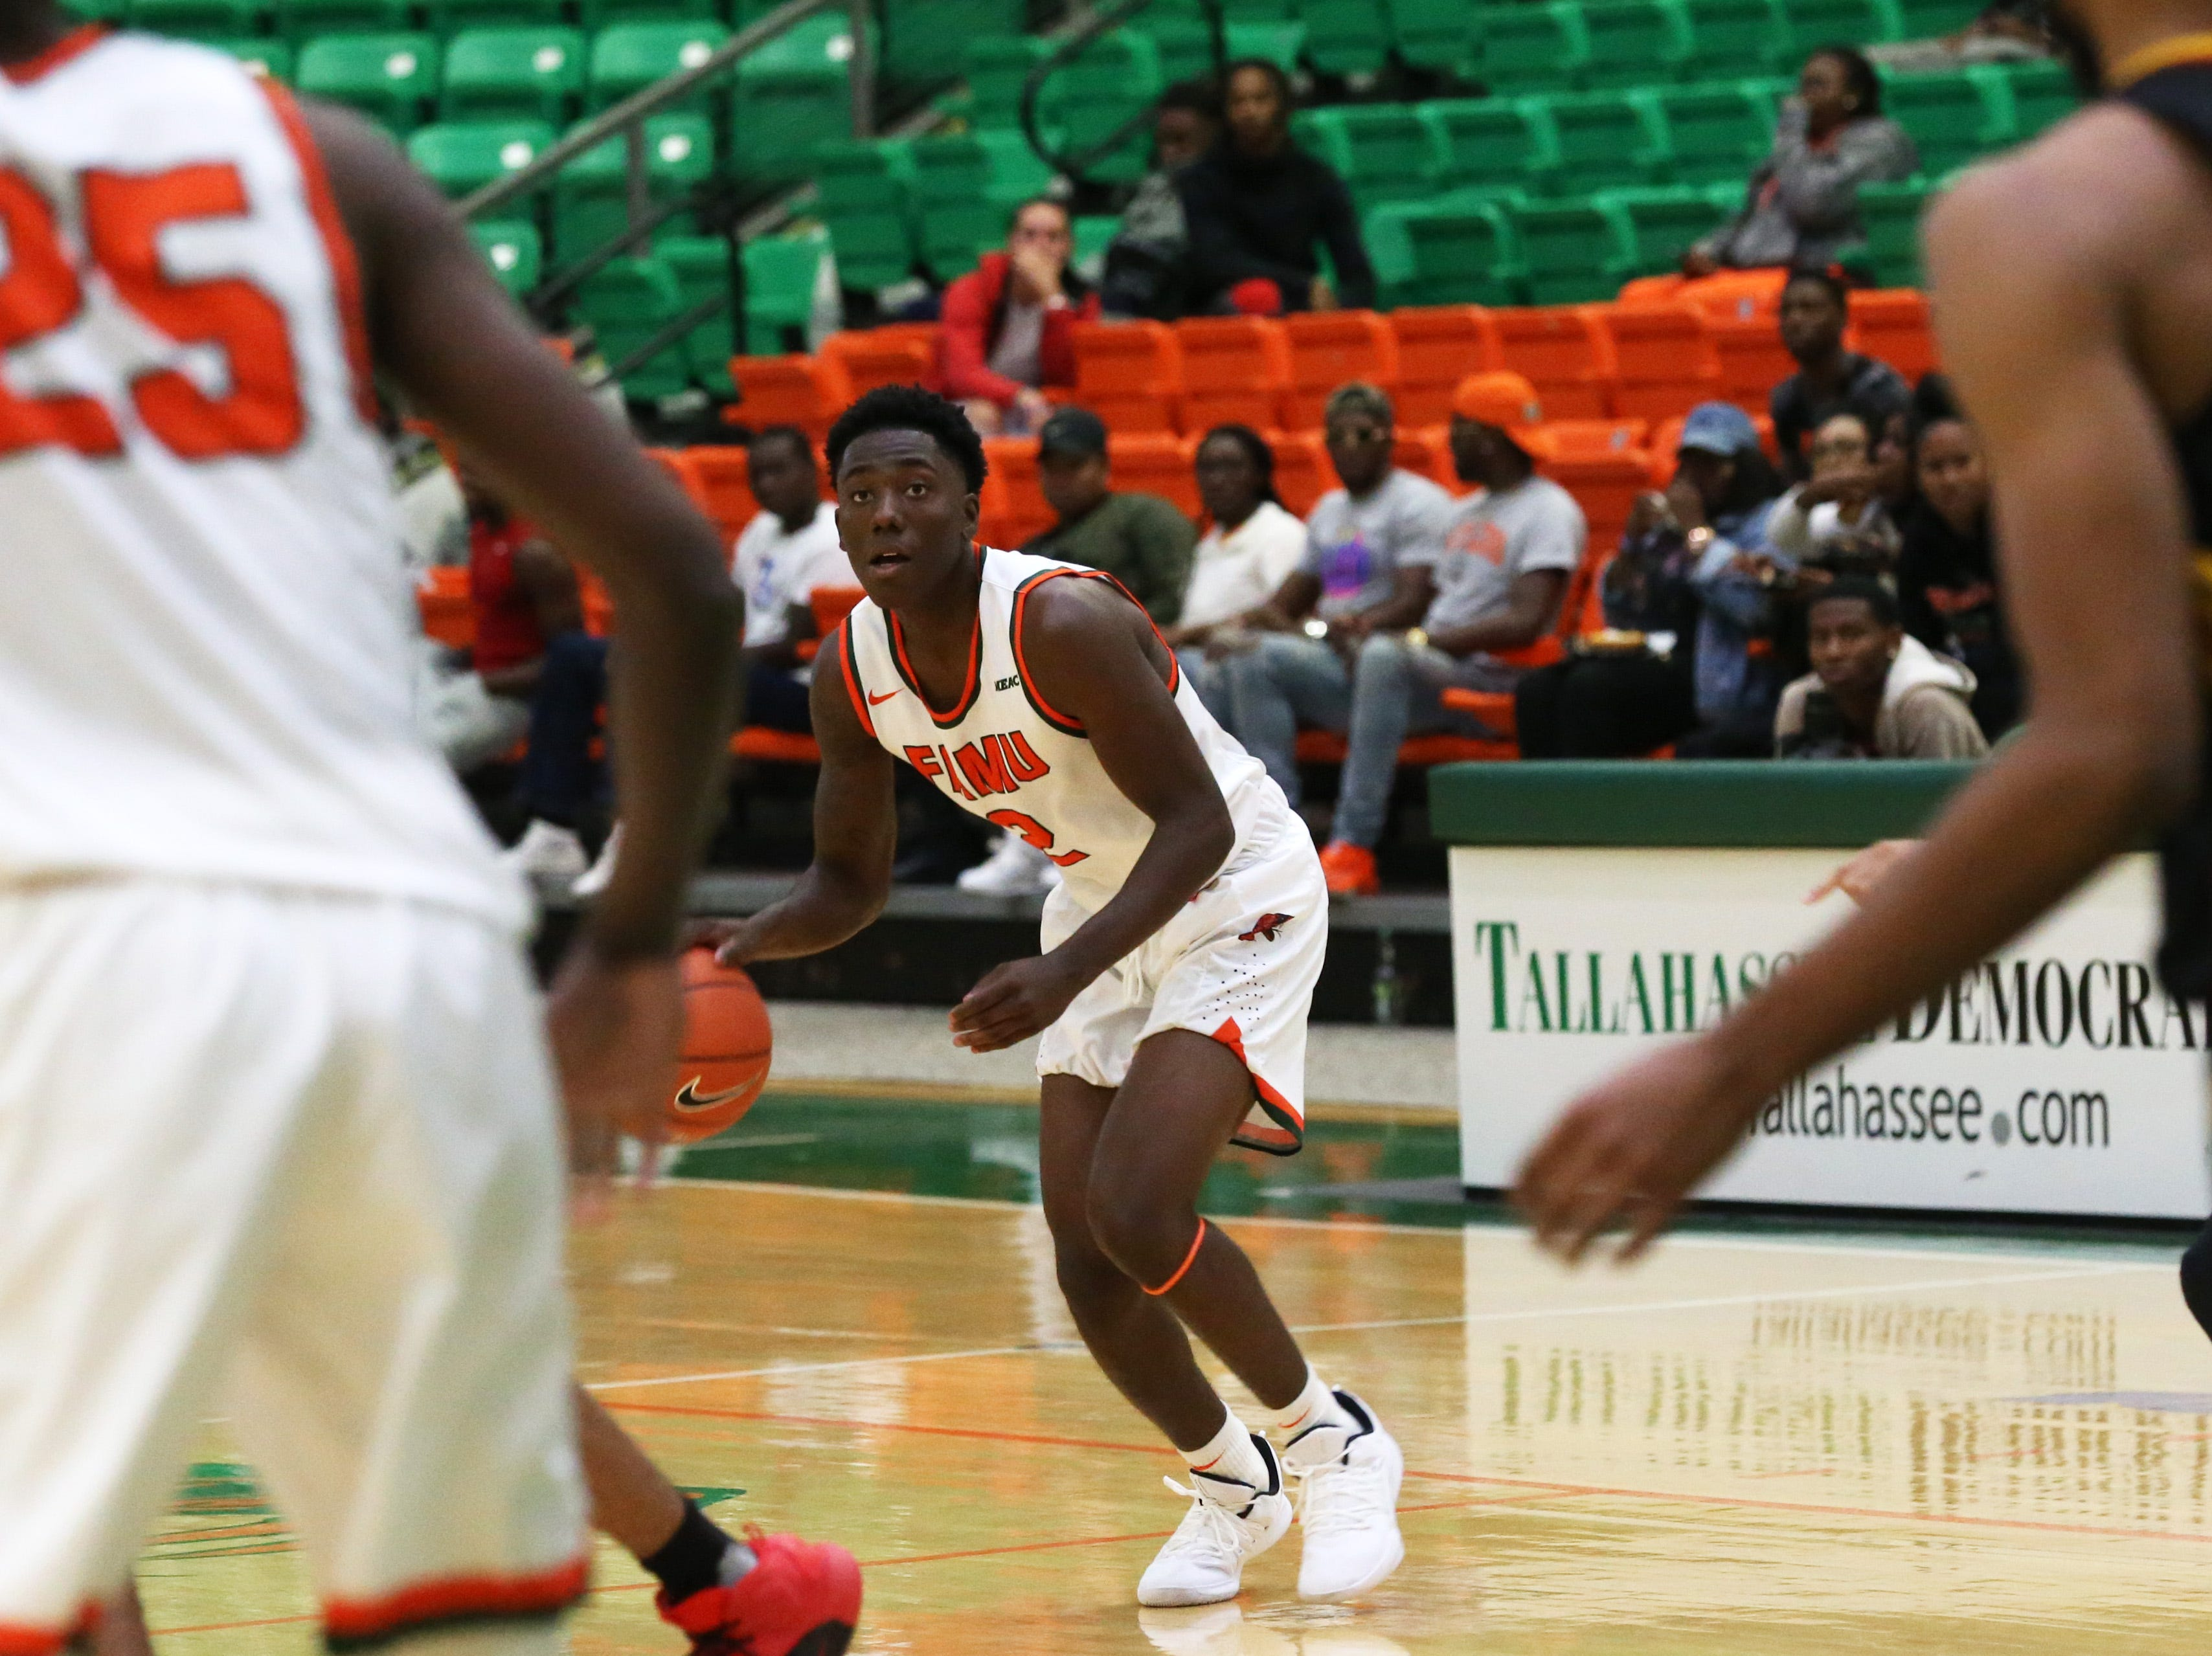 Florida A&M Rattlers guard Kamron Reaves (2) looks at his teammates to make a play as the FAMU Rattlers take on the Tuskegee Golden Tigers in their first home game of the season in the Lawson Center, Saturday, Nov. 10, 2018.